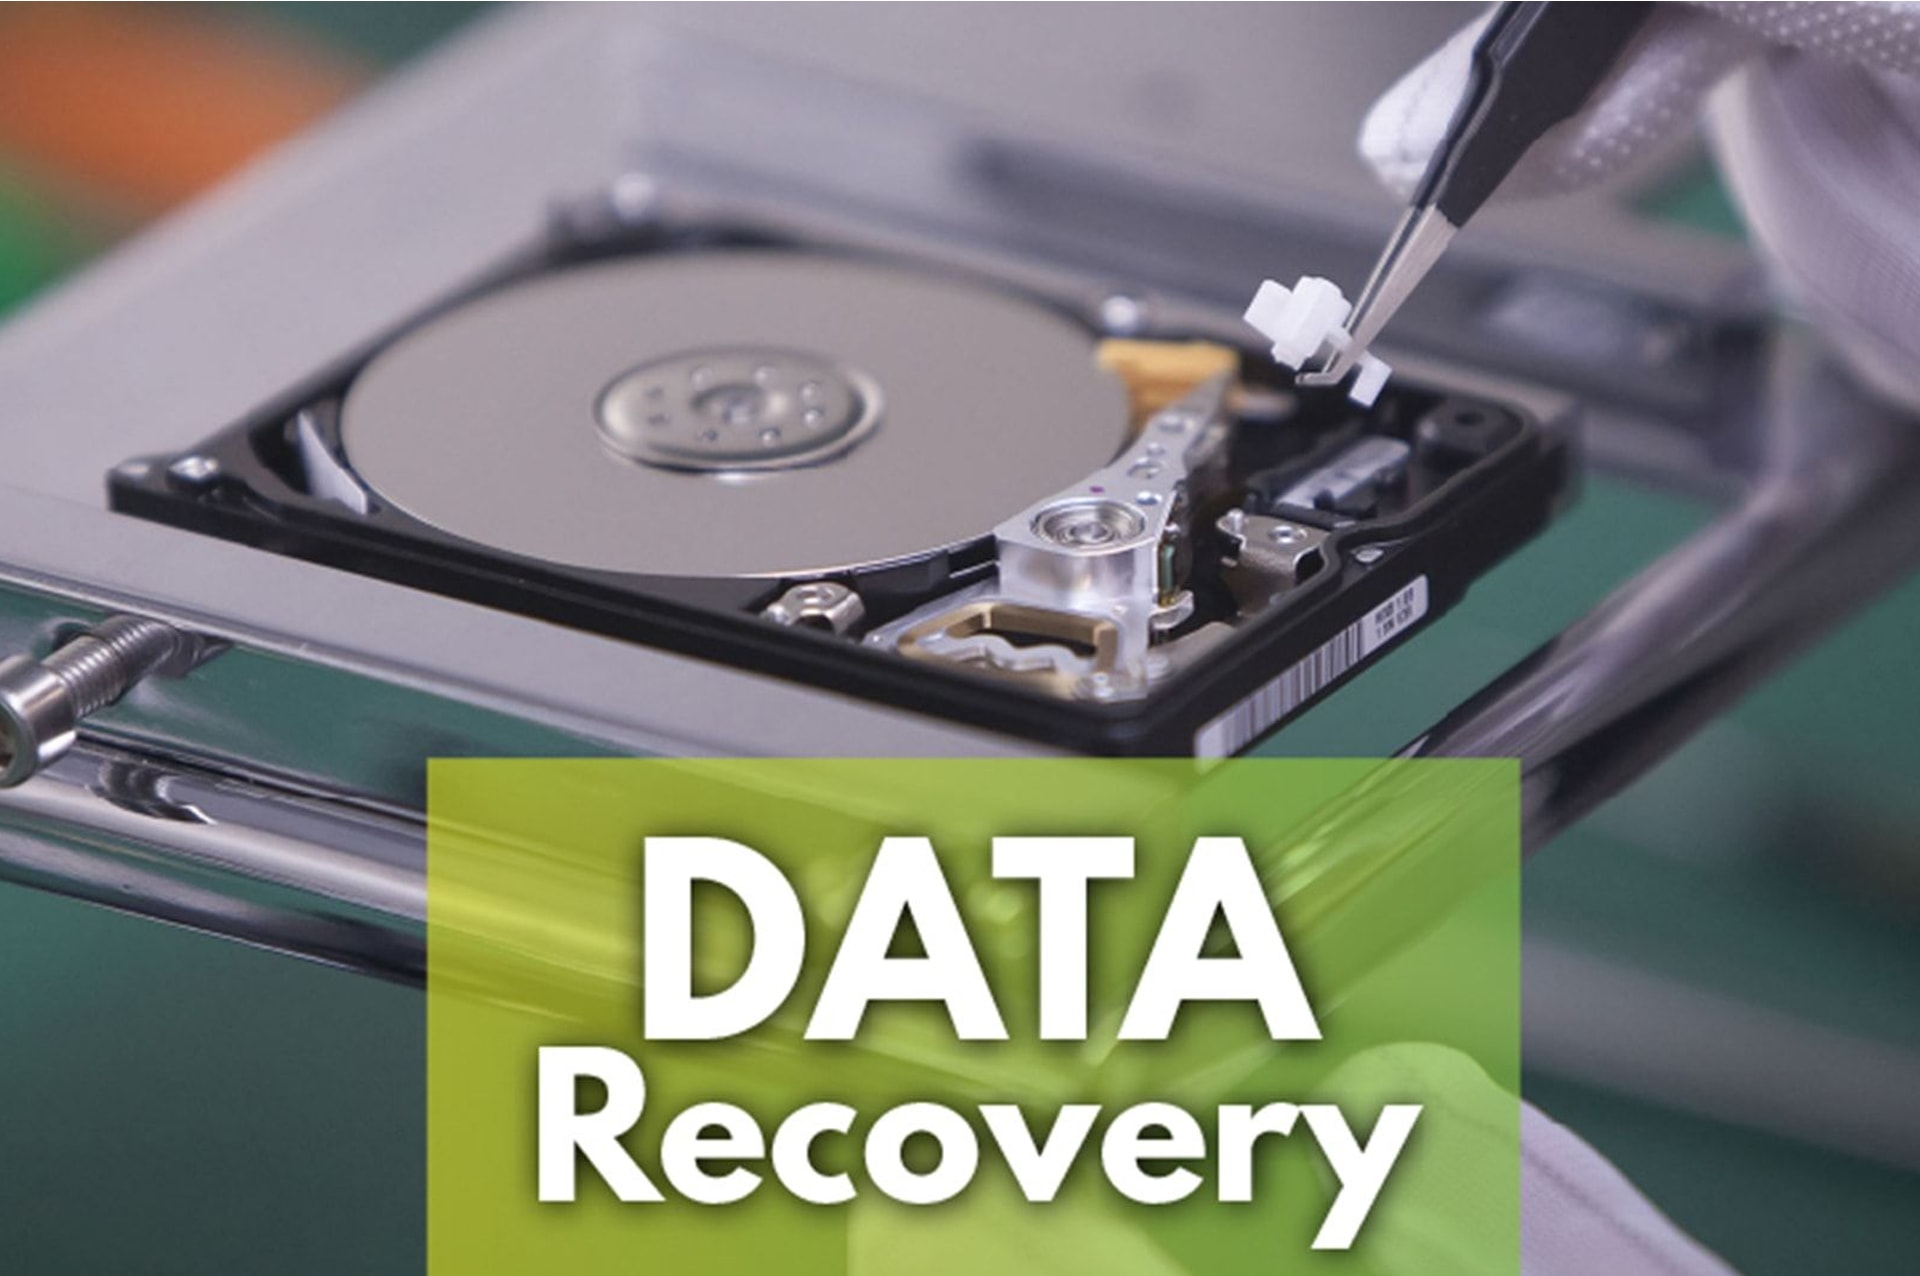 Data Recovery From Storage Drives In NYC